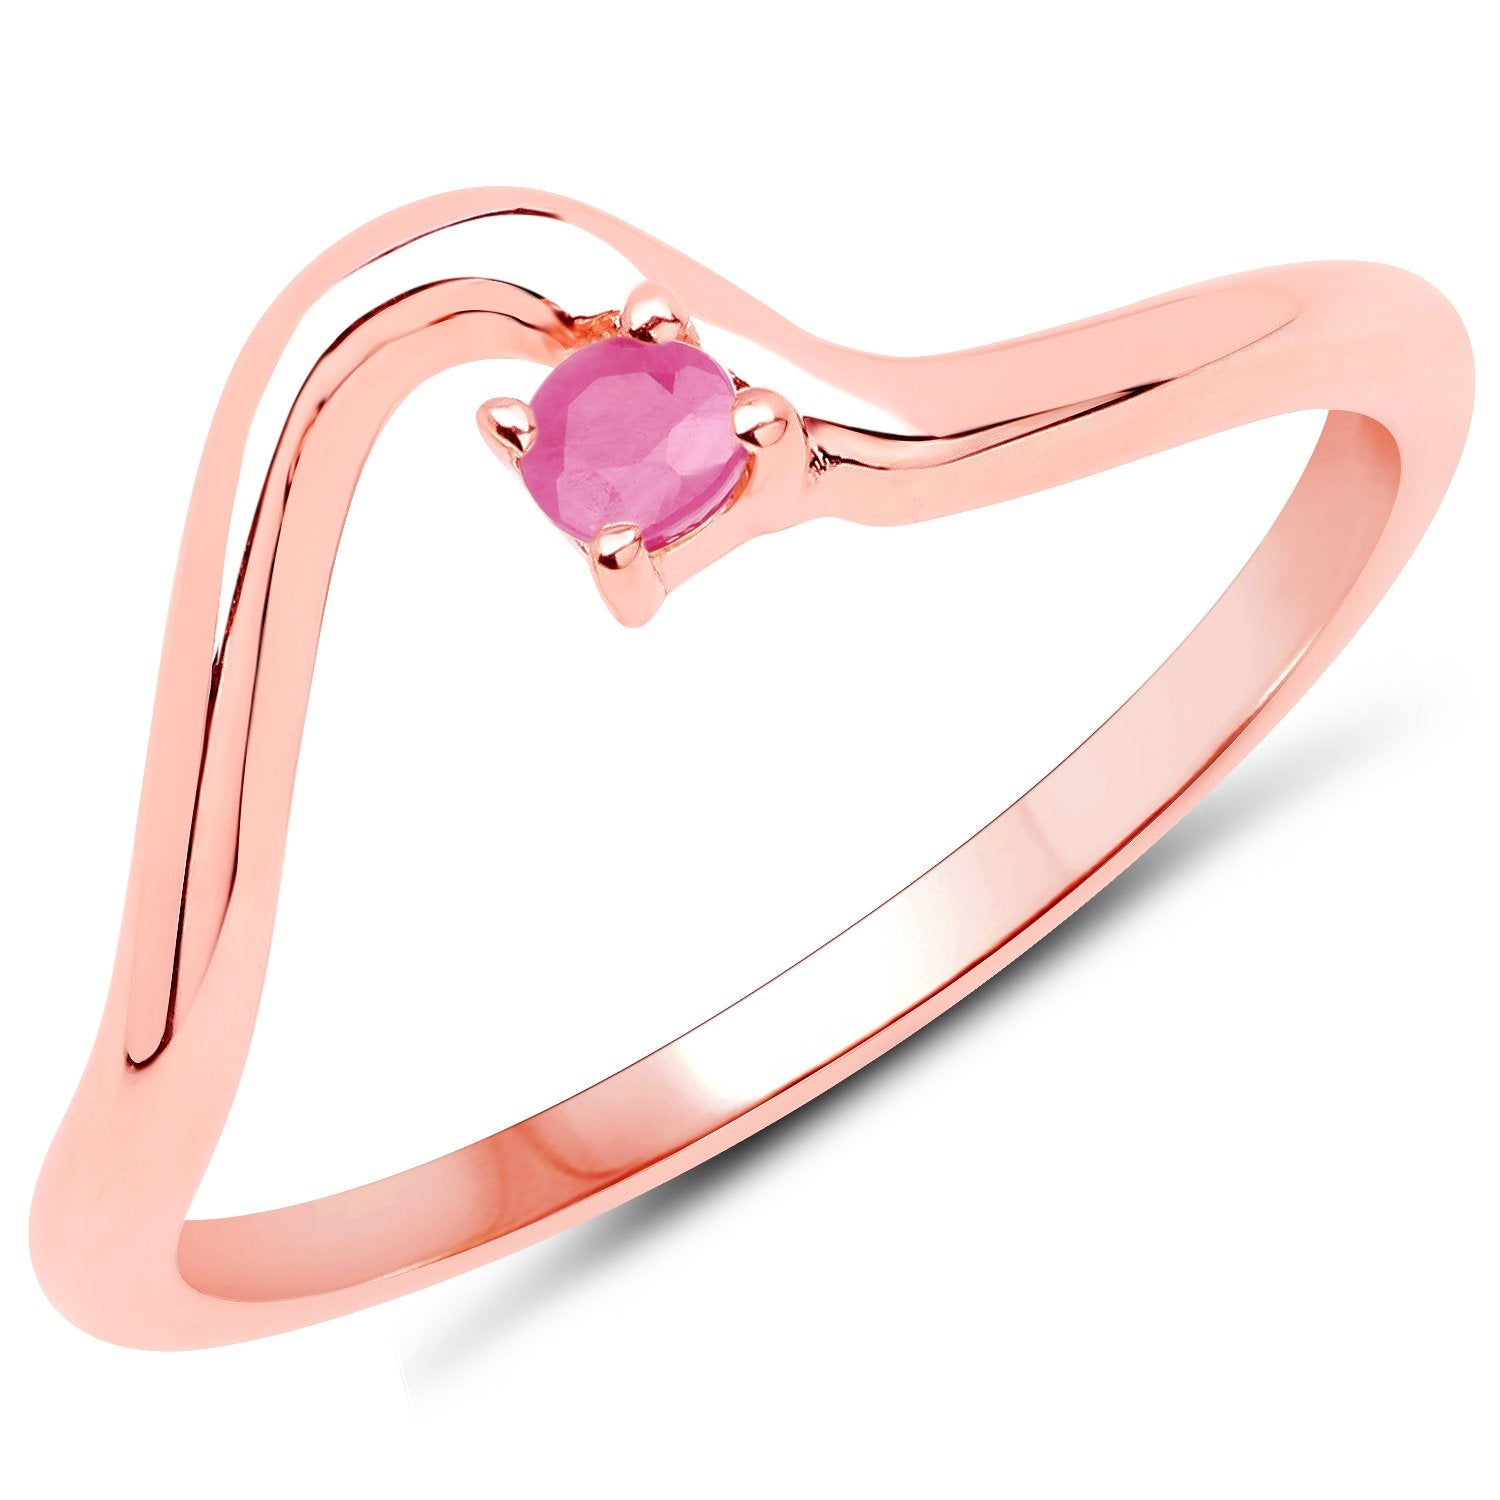 LoveHuang 0.07 Carats Genuine Ruby Minimalist Ring Solid .925 Sterling Silver With 18KT Rose Gold Plating